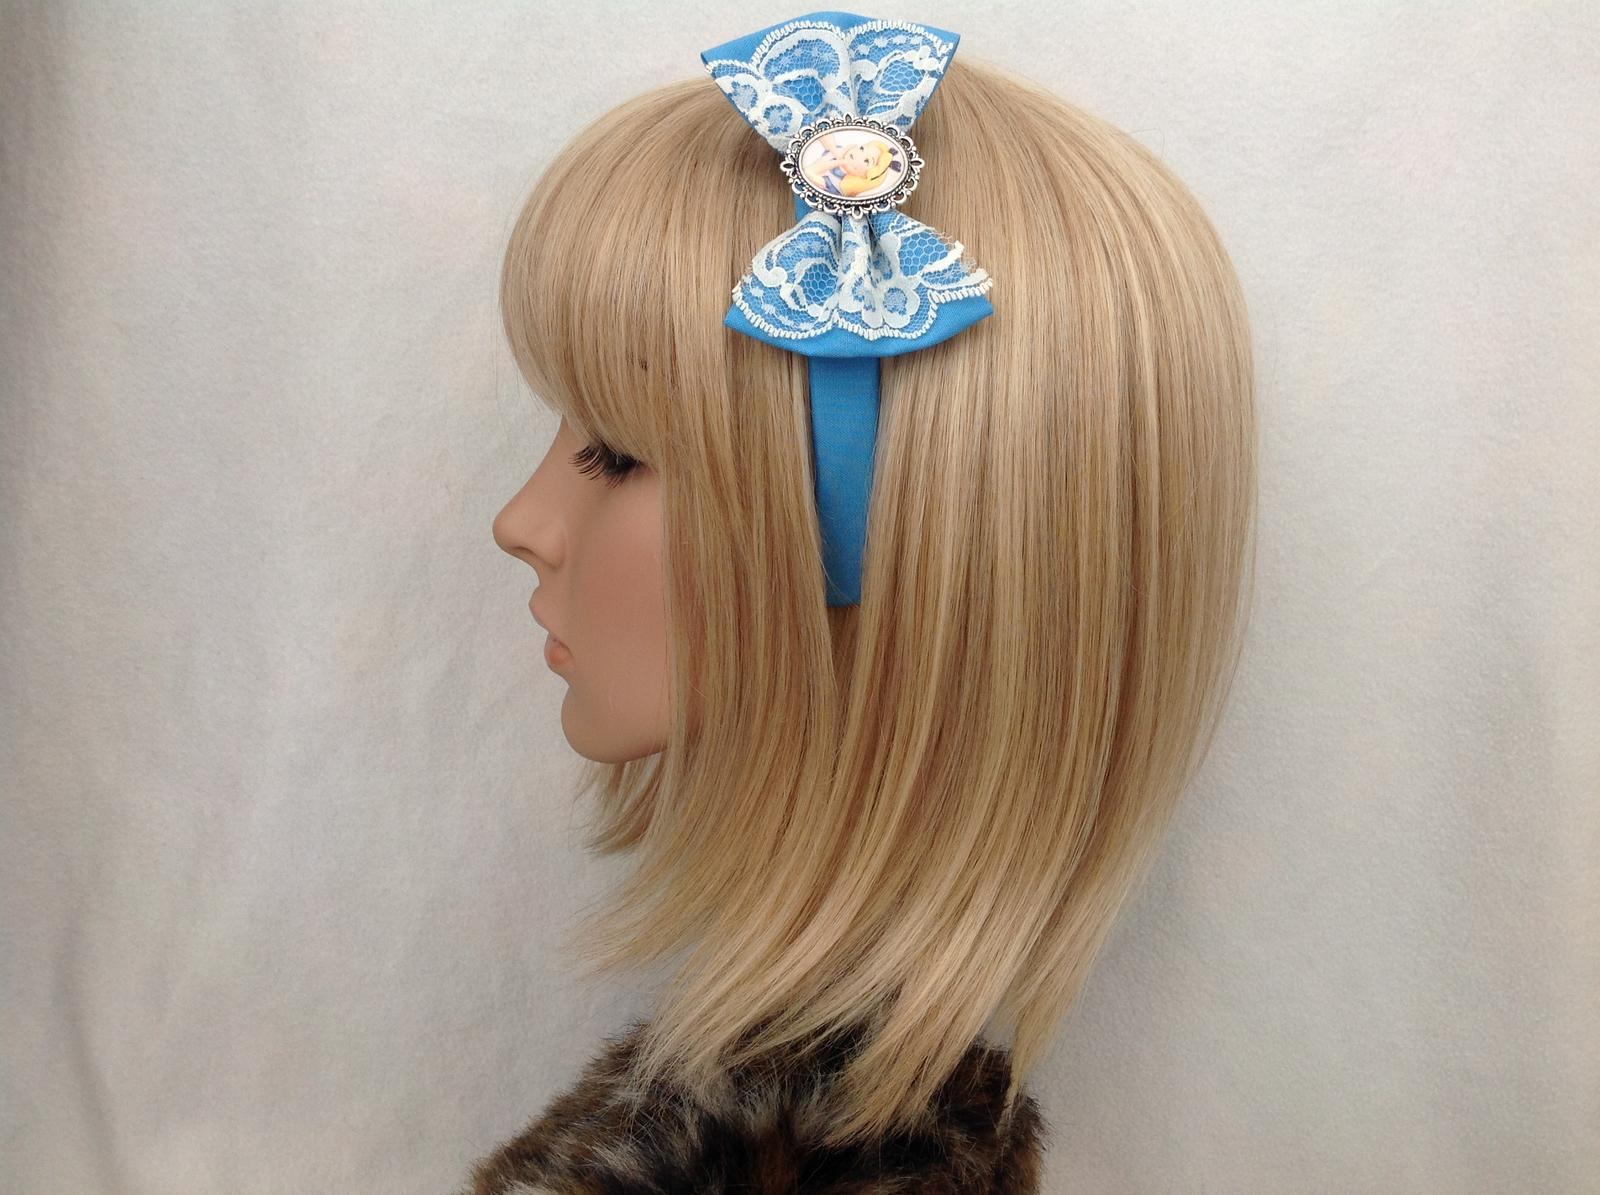 Alice in Wonderland headband